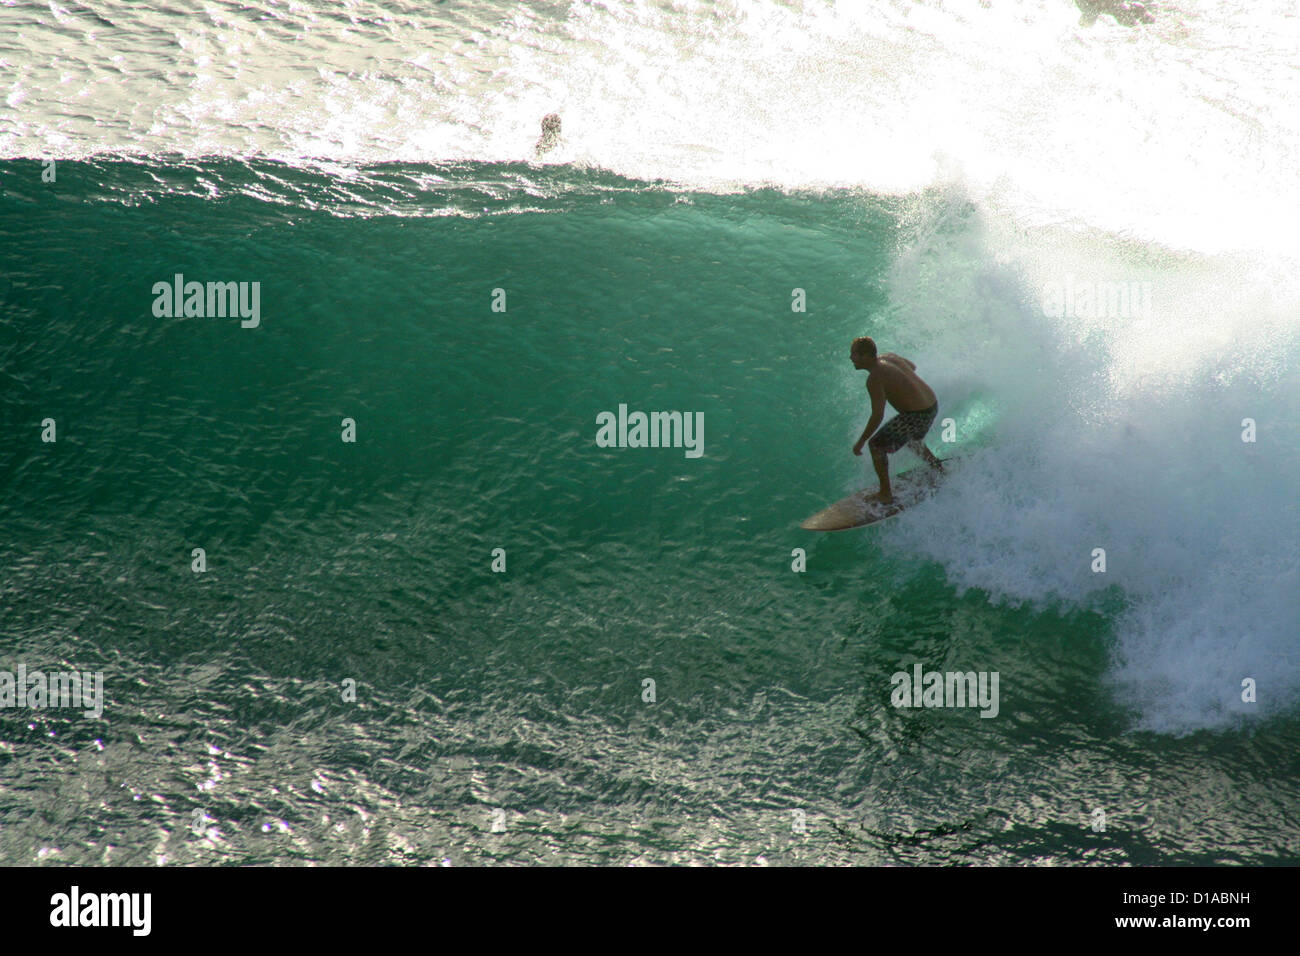 Surfer riding a huge wave, Maui, Hawaii Stock Photo